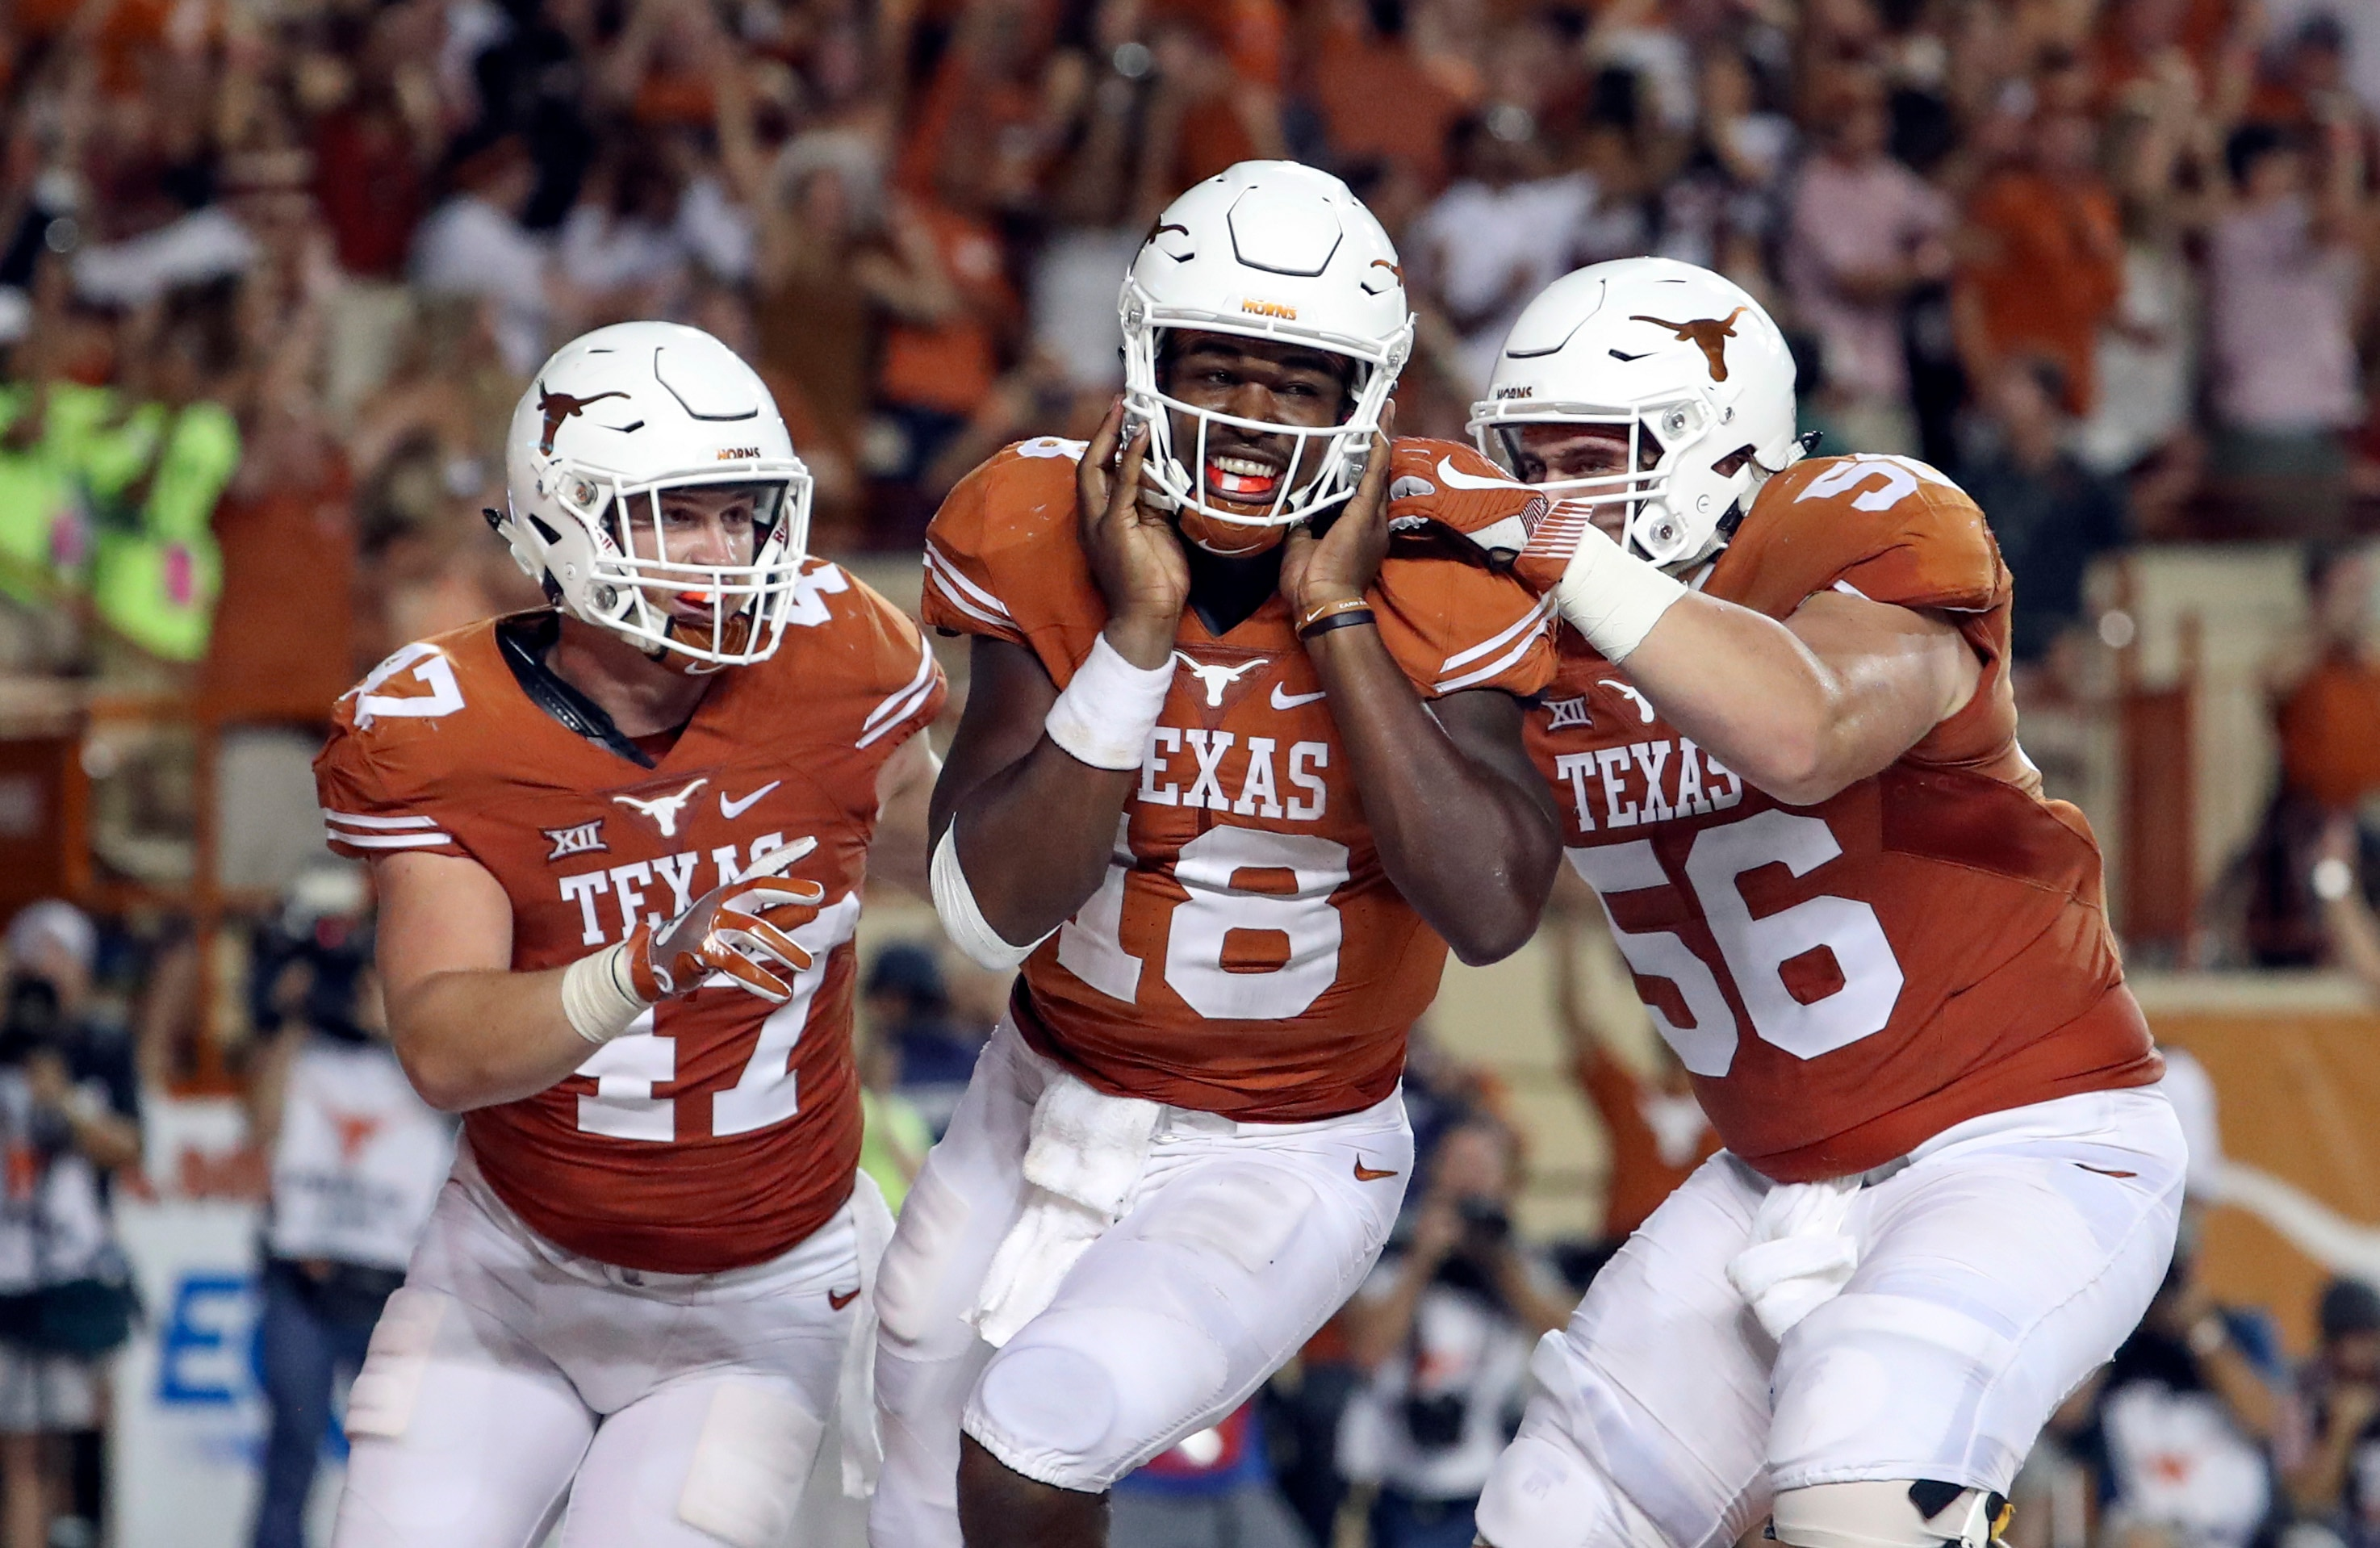 Texas  burnt orange jerseys are easily recognizable and one of the best  uniforms in the nation. 538e4e254